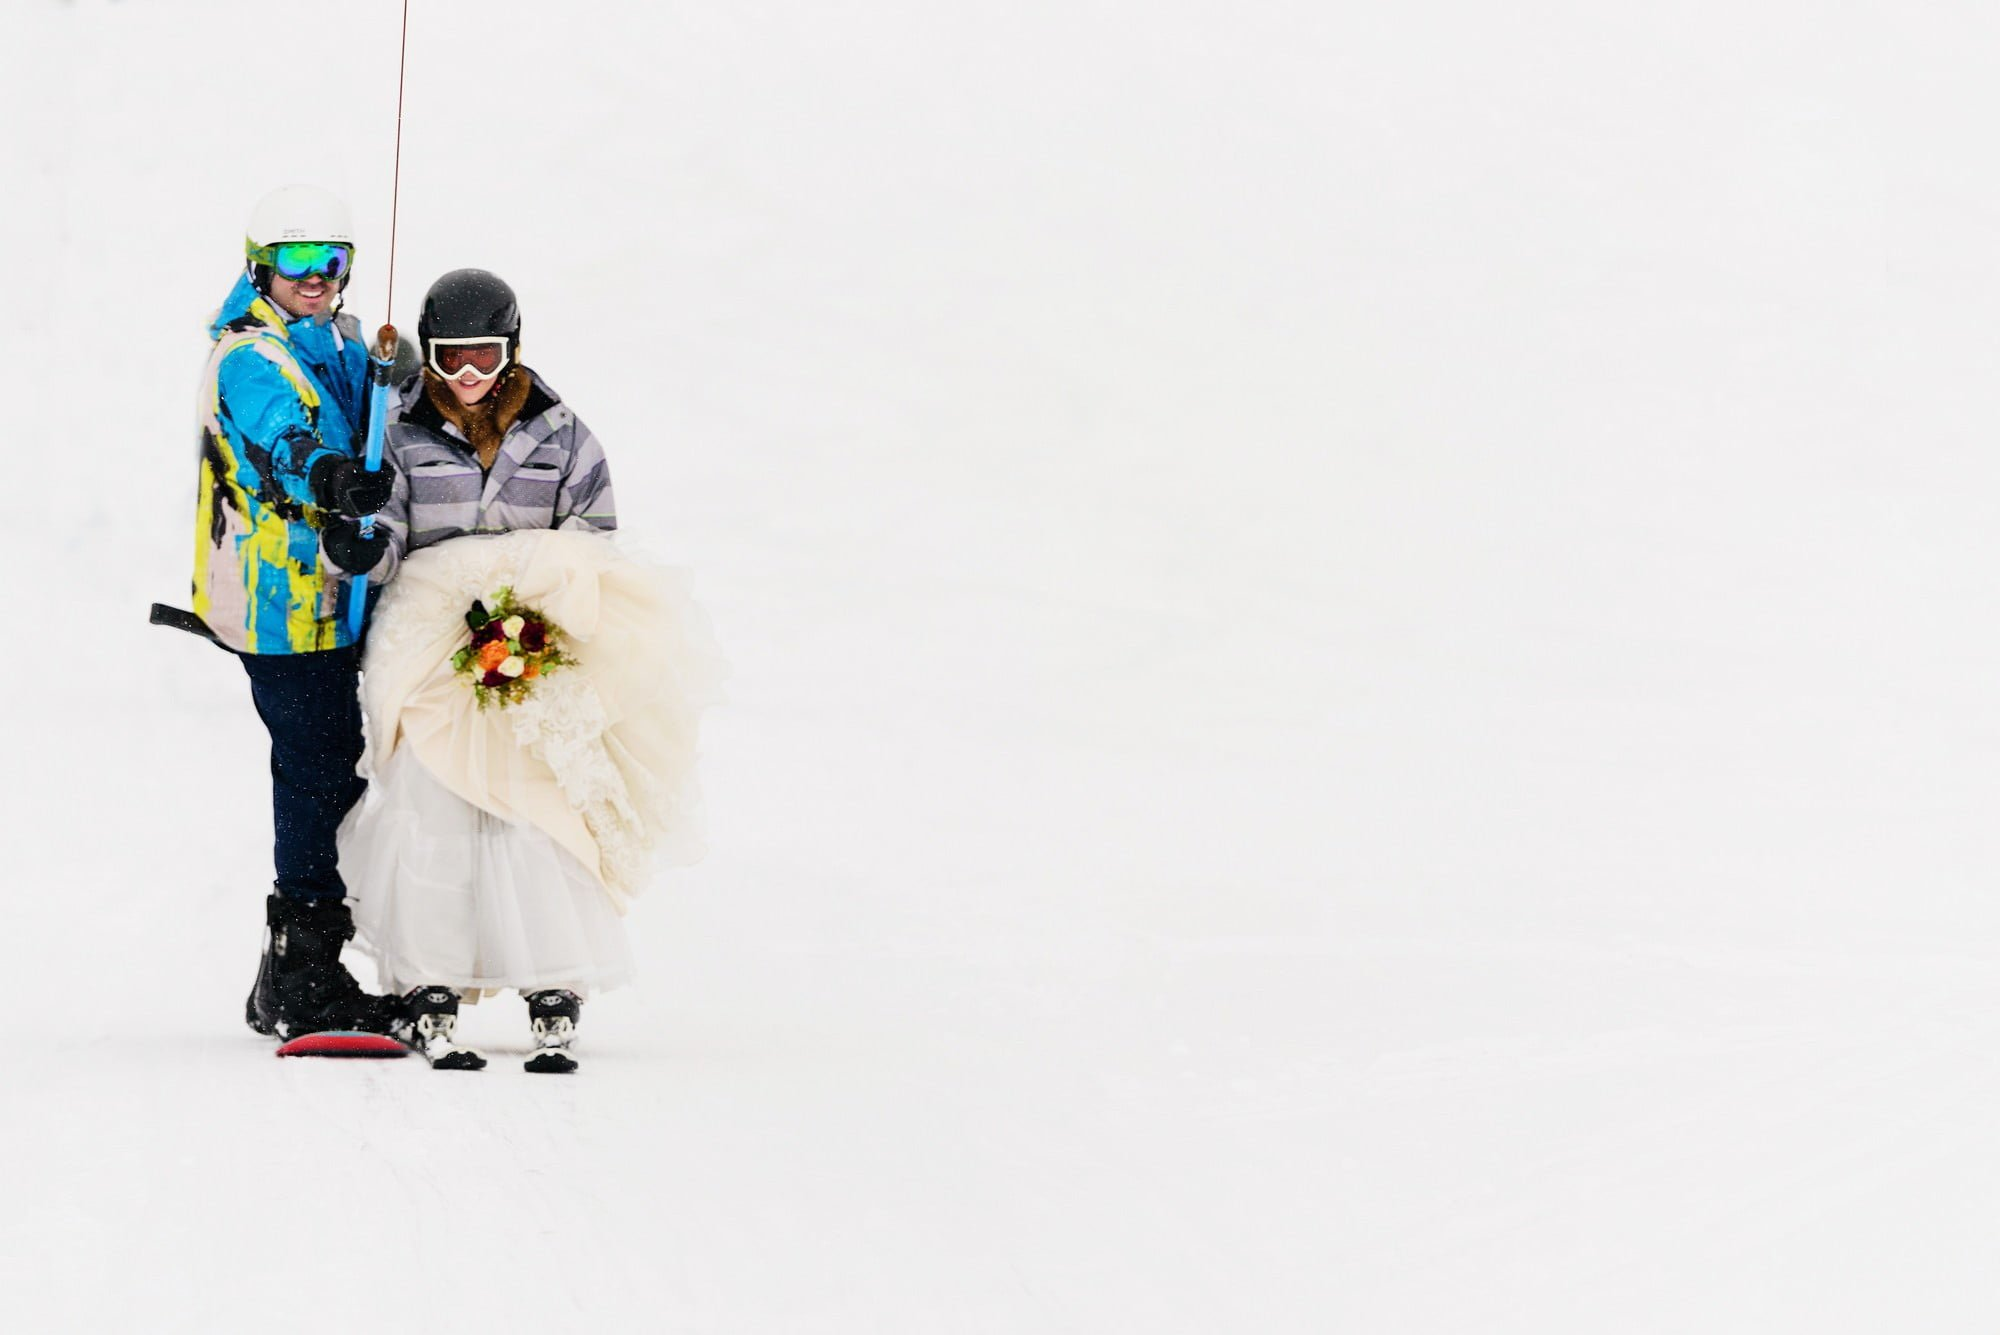 ski lift in a wedding dress